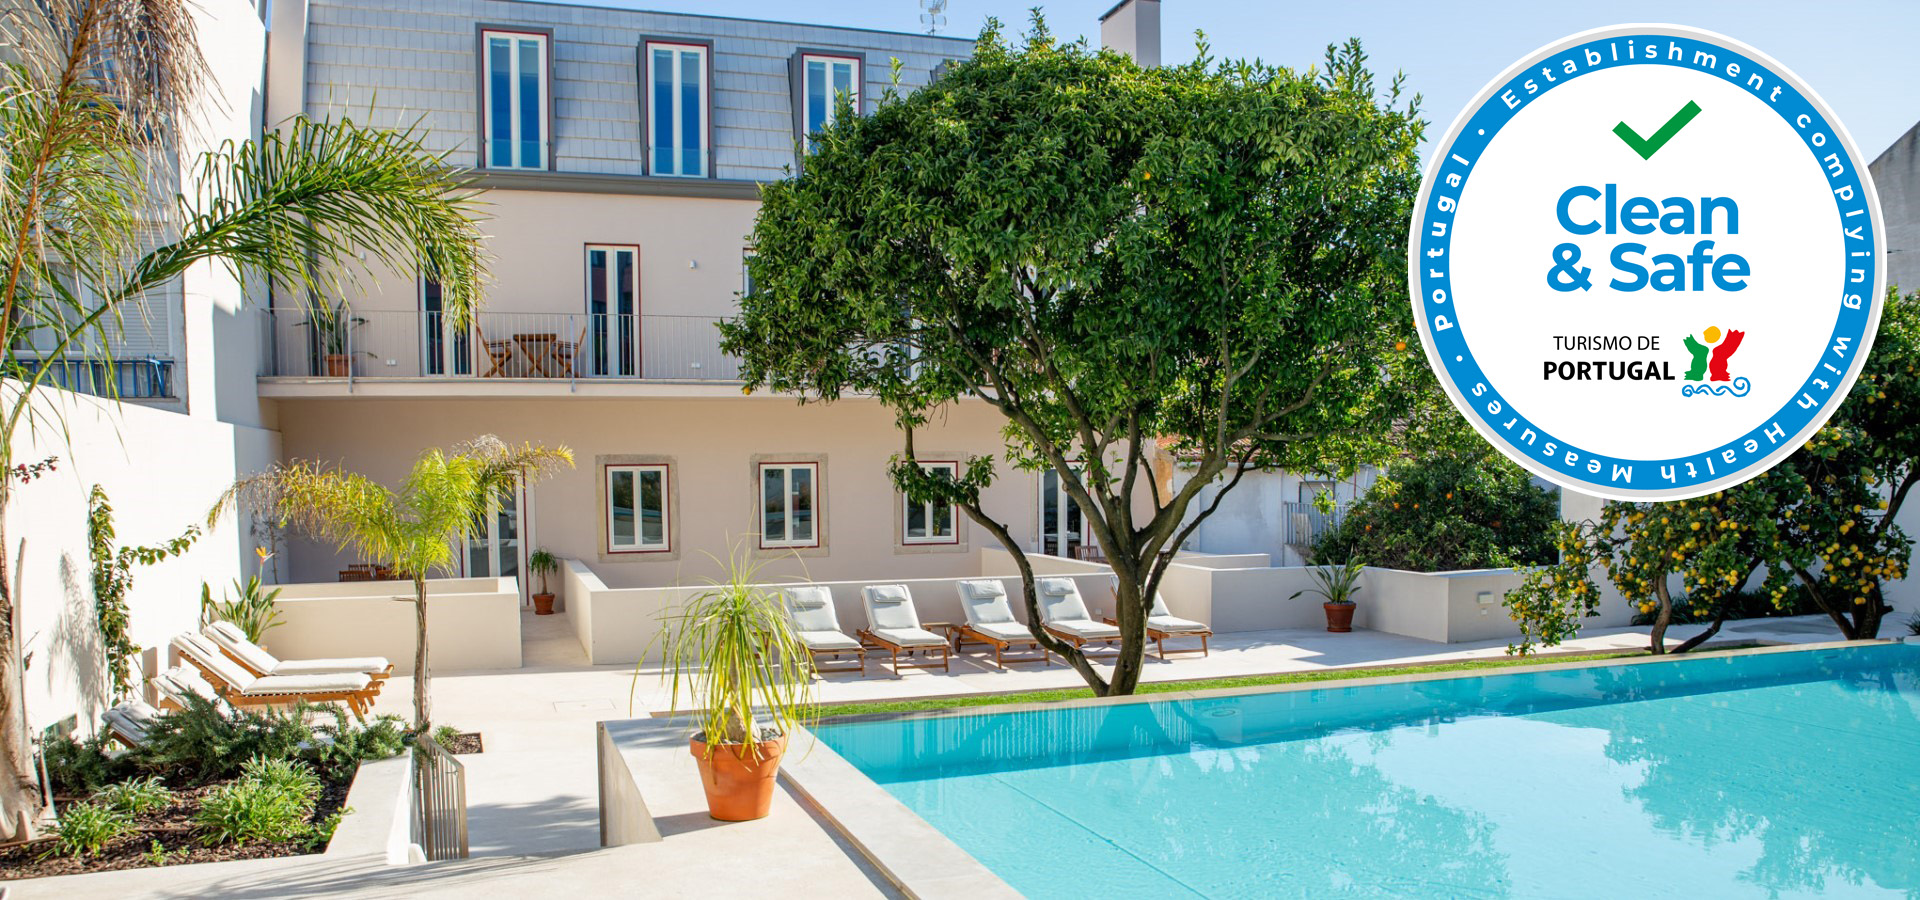 Charming apartments with garden and swimming pool in Lisbon